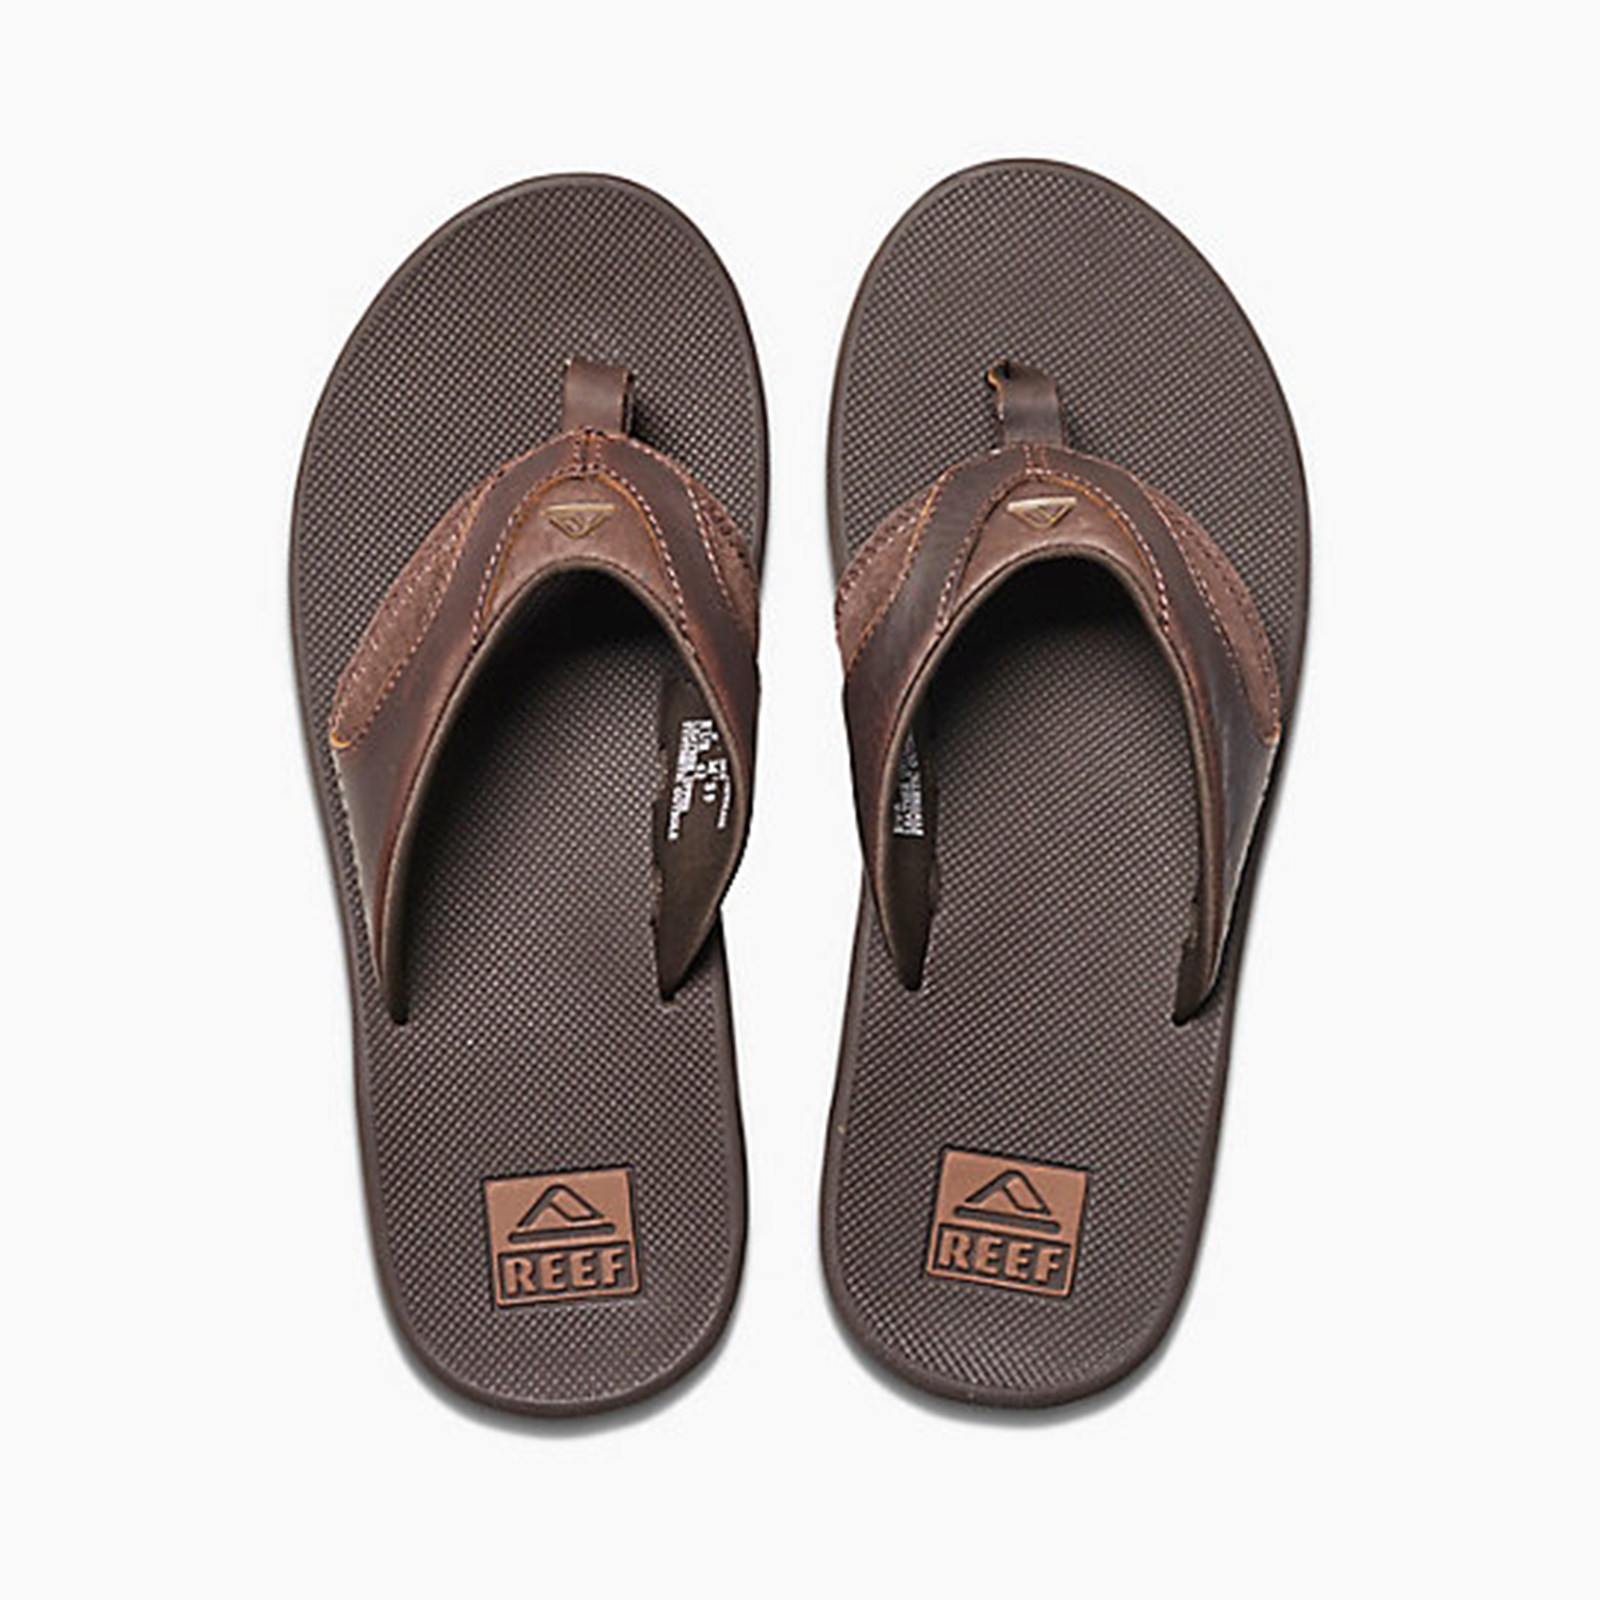 7c98240cbf2c ... Brown flip-flops with integrated bottle opener - LEATHER FANNING BROWN. Size  Size Guide